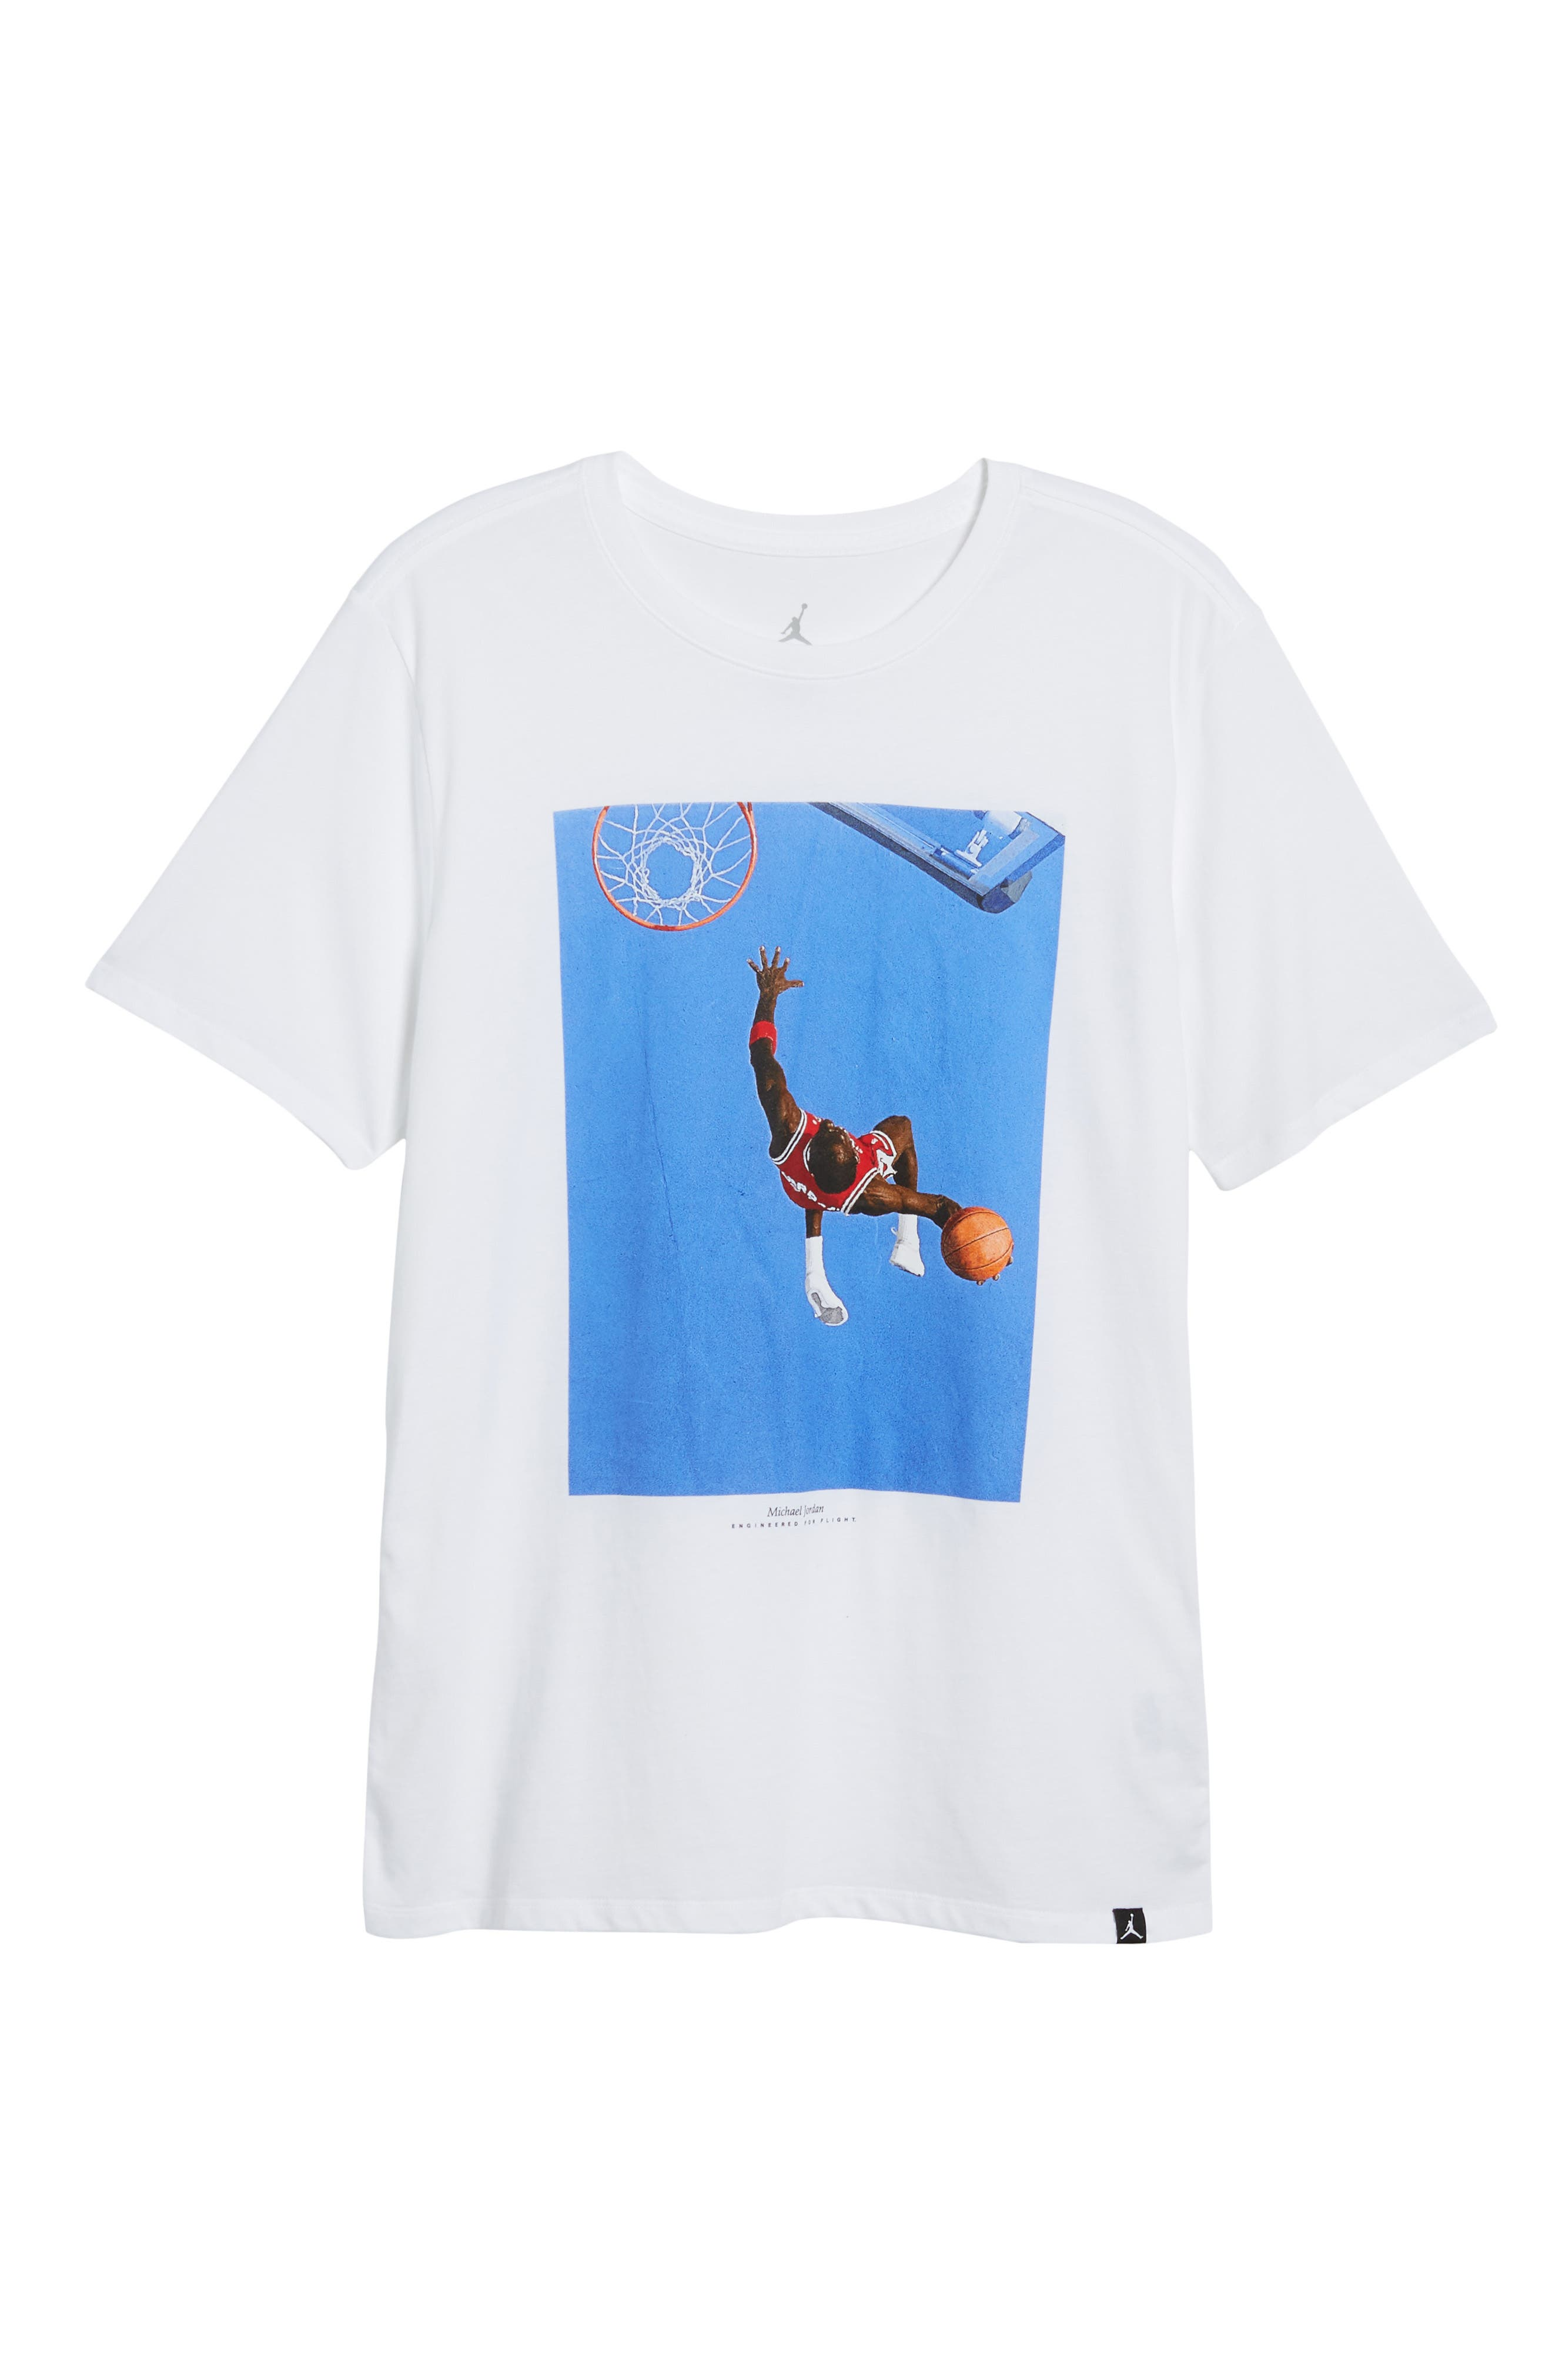 Sports Illustrated Graphic T-Shirt,                             Alternate thumbnail 12, color,